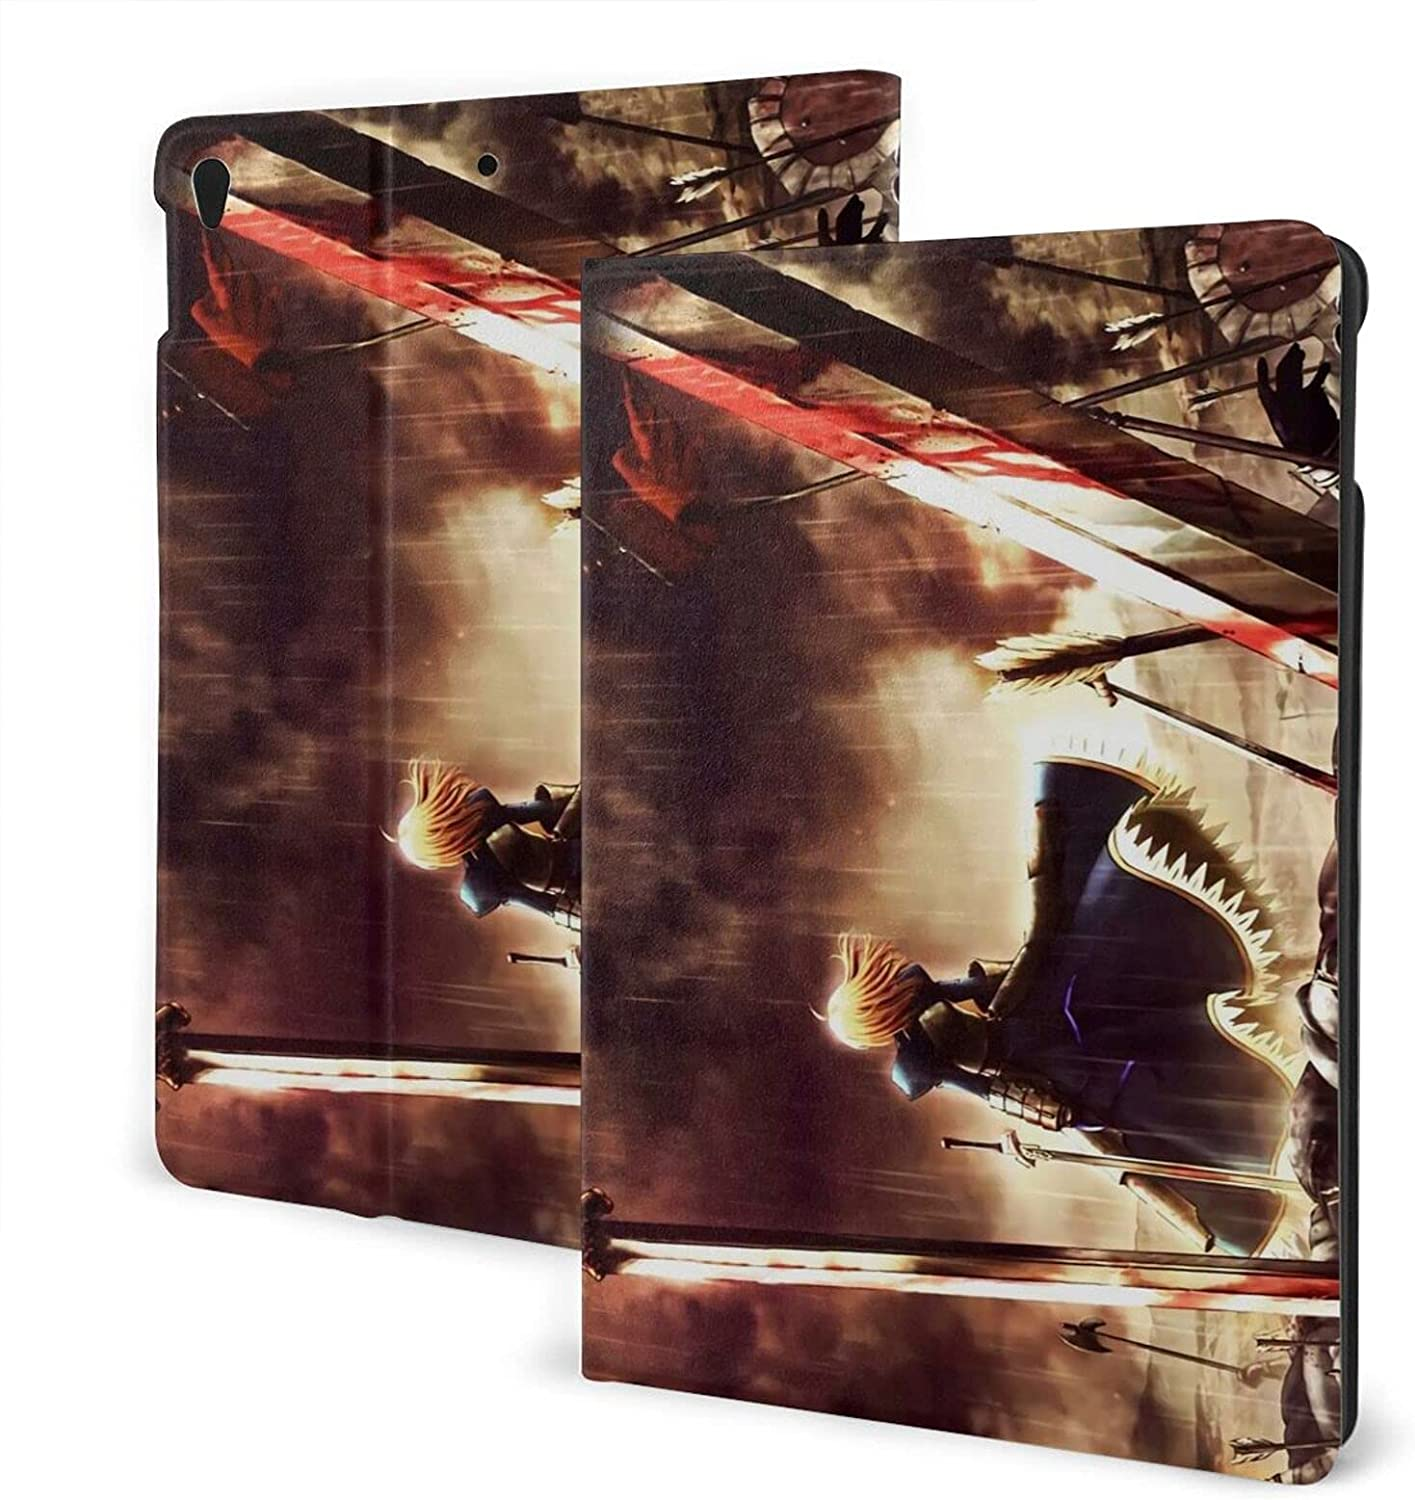 Fate Zero Saber IPad Case Seattle Mall air3 Tablet pro Outlet ☆ Free Shipping 10.5inch Anime